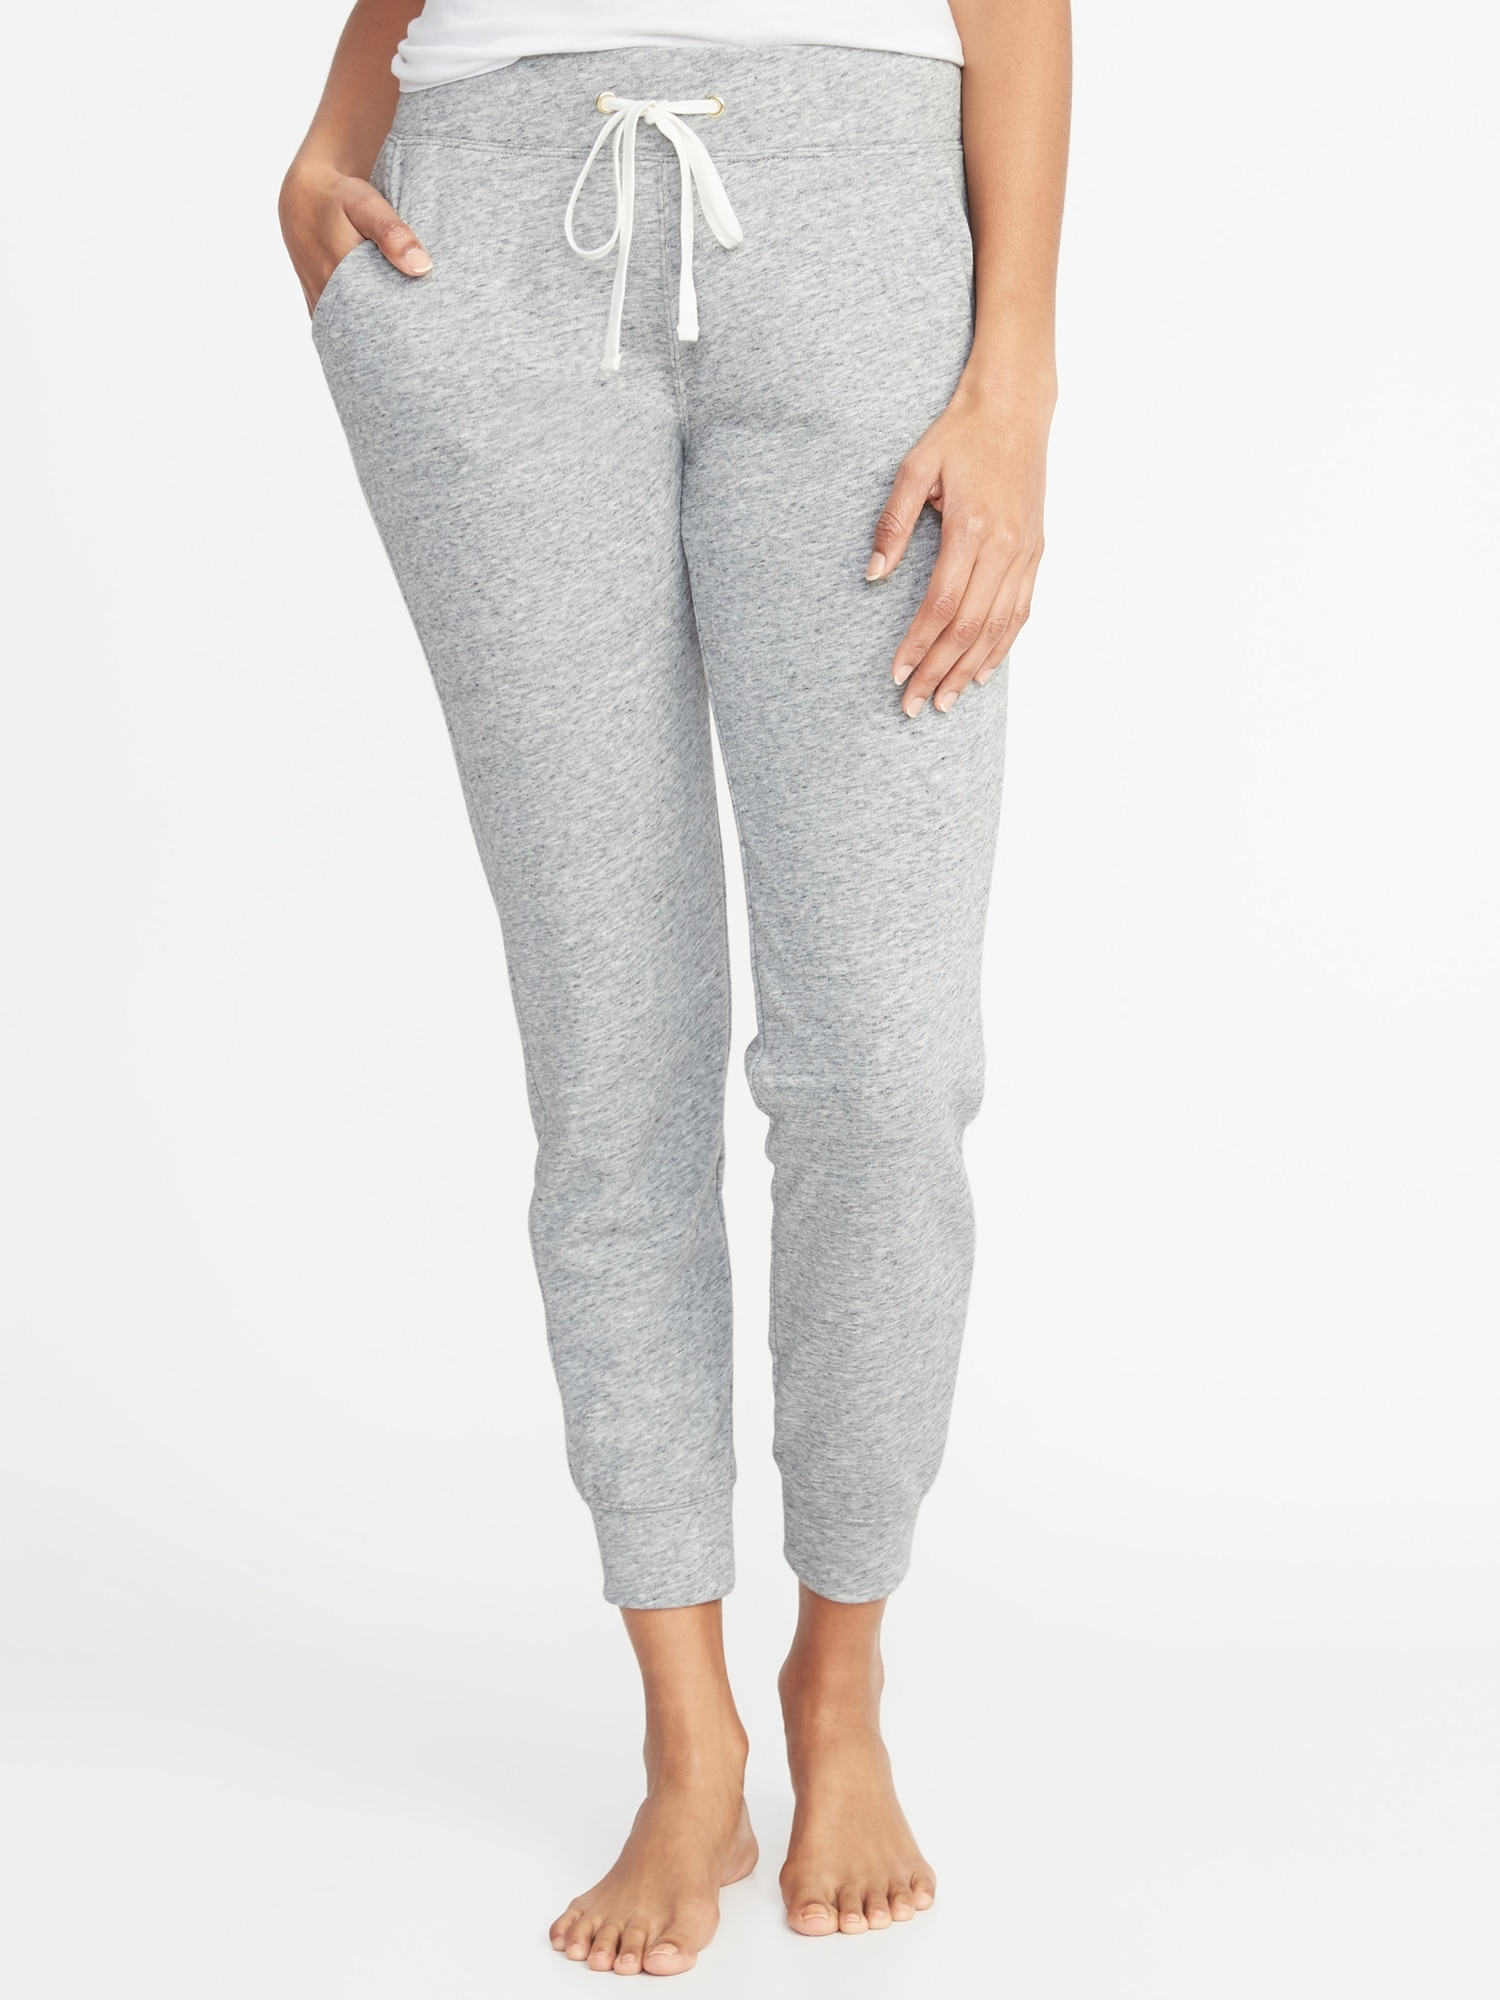 5d995a040d3b French-Terry Lounge Joggers for Women